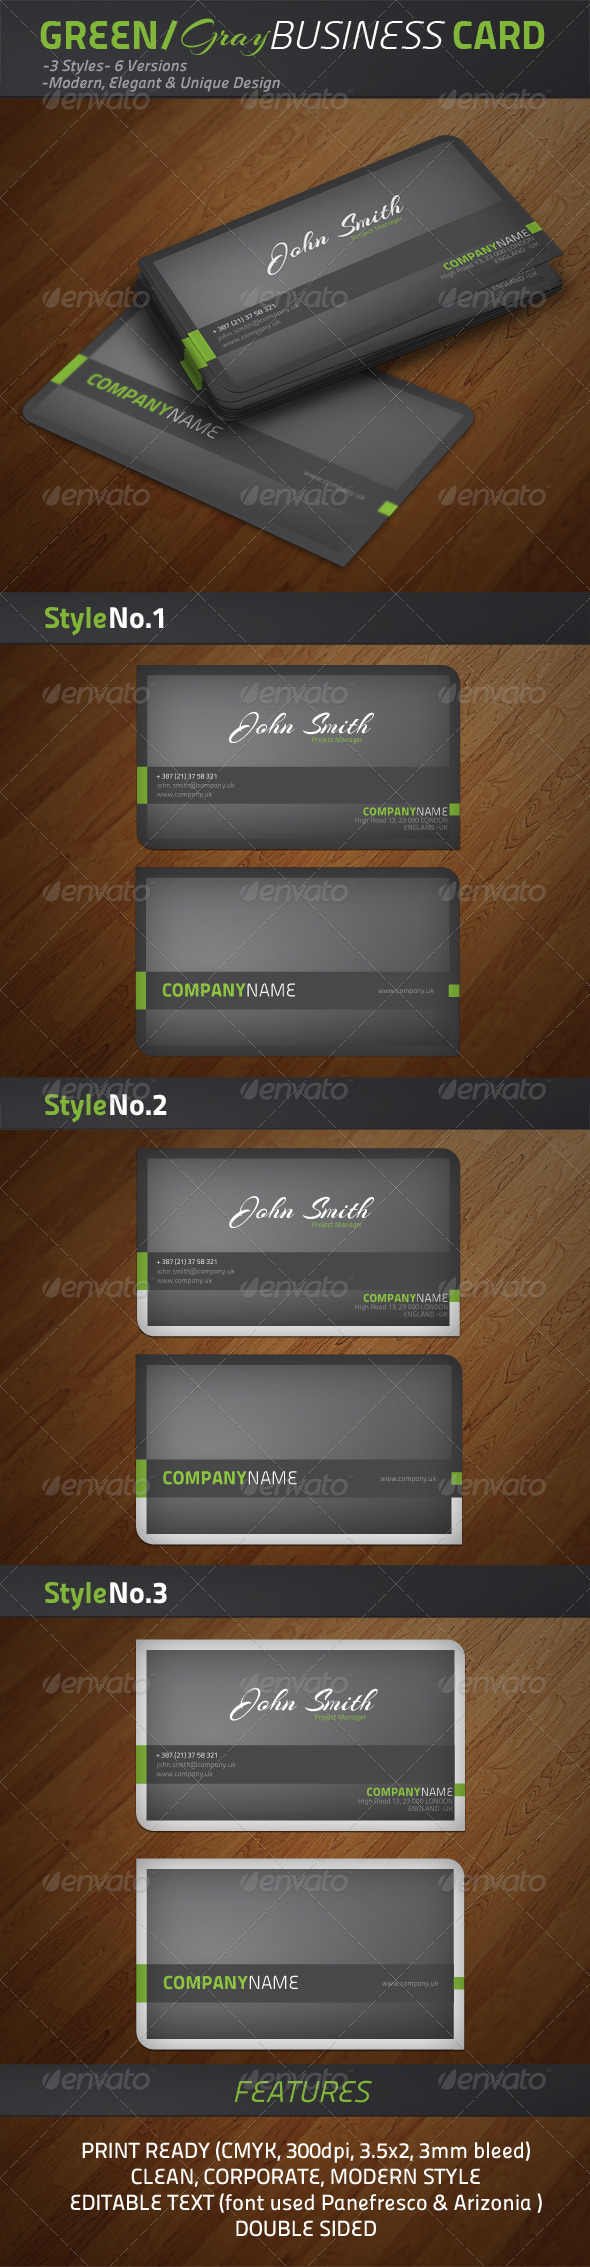 Green/Grey Modern Business Cards - Creative Business Cards